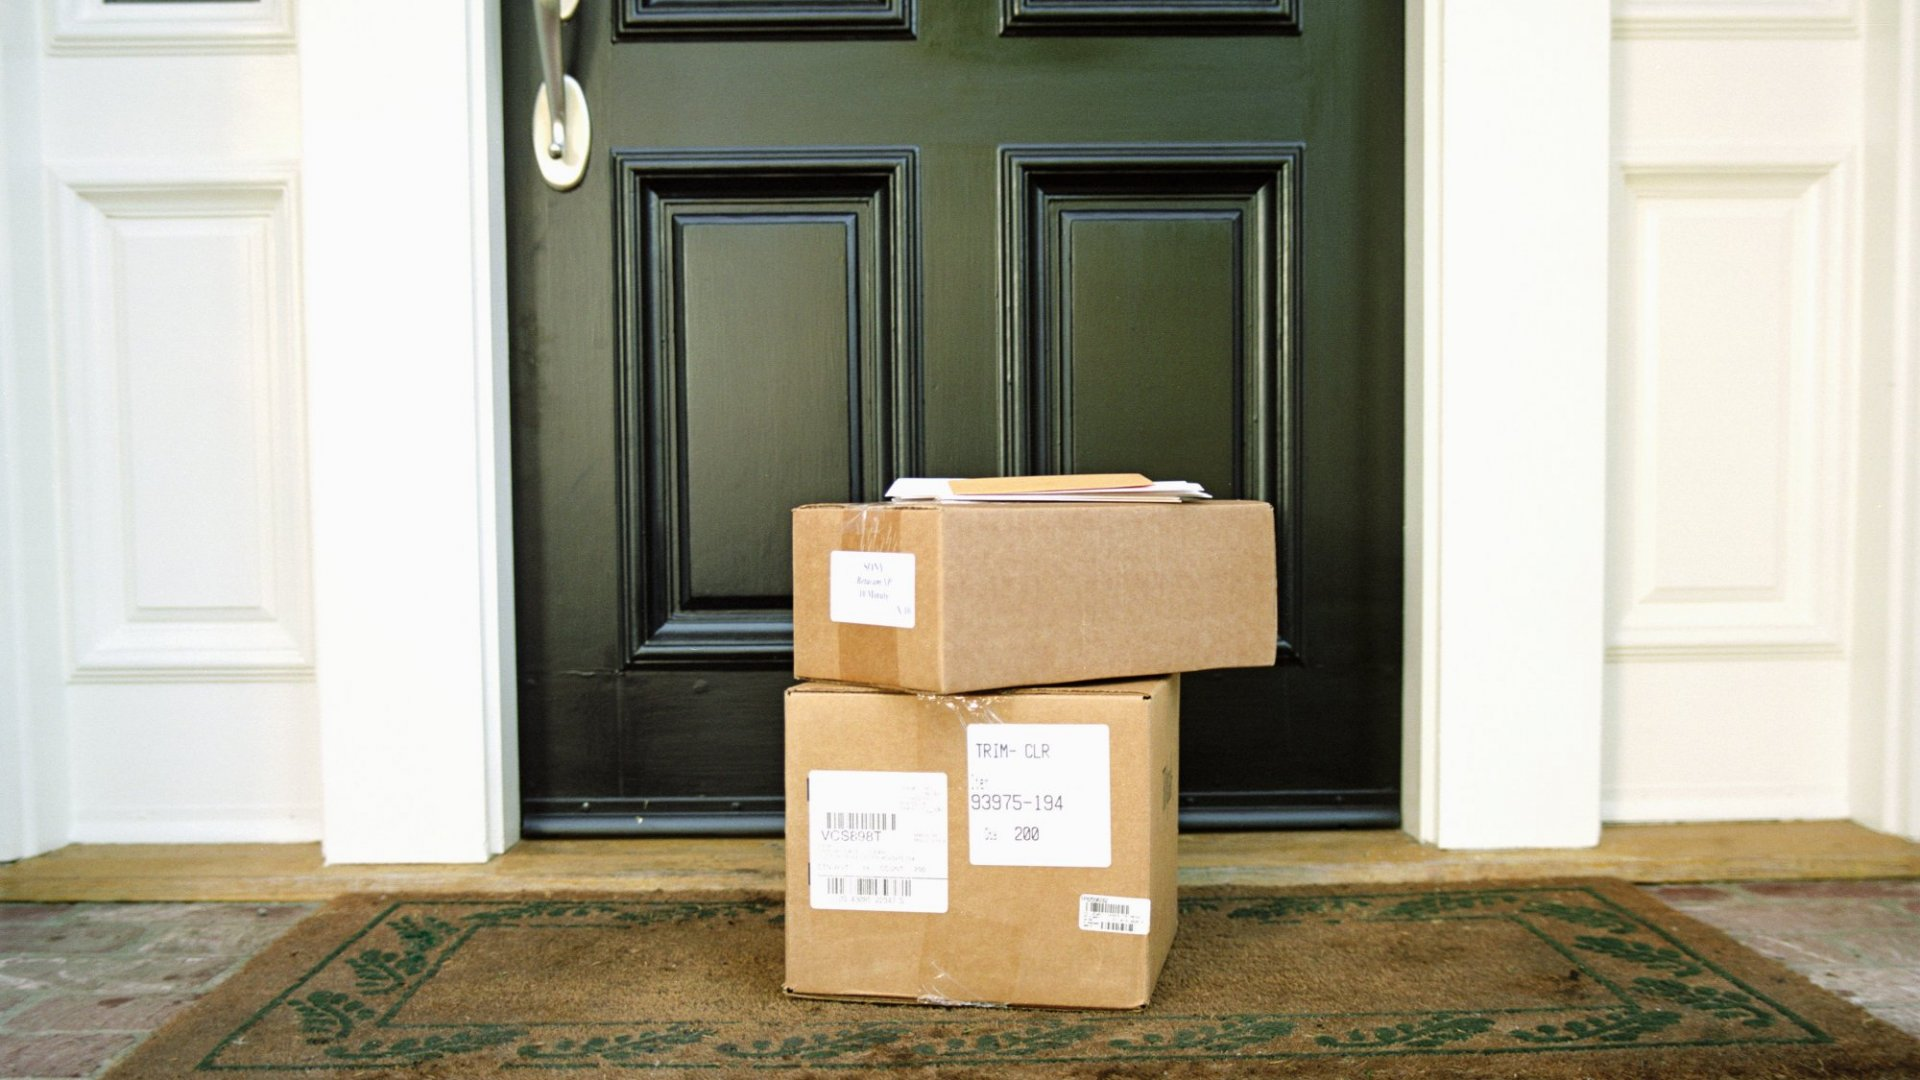 Tired Of Getting Your Packages Stolen? Here's What To Do